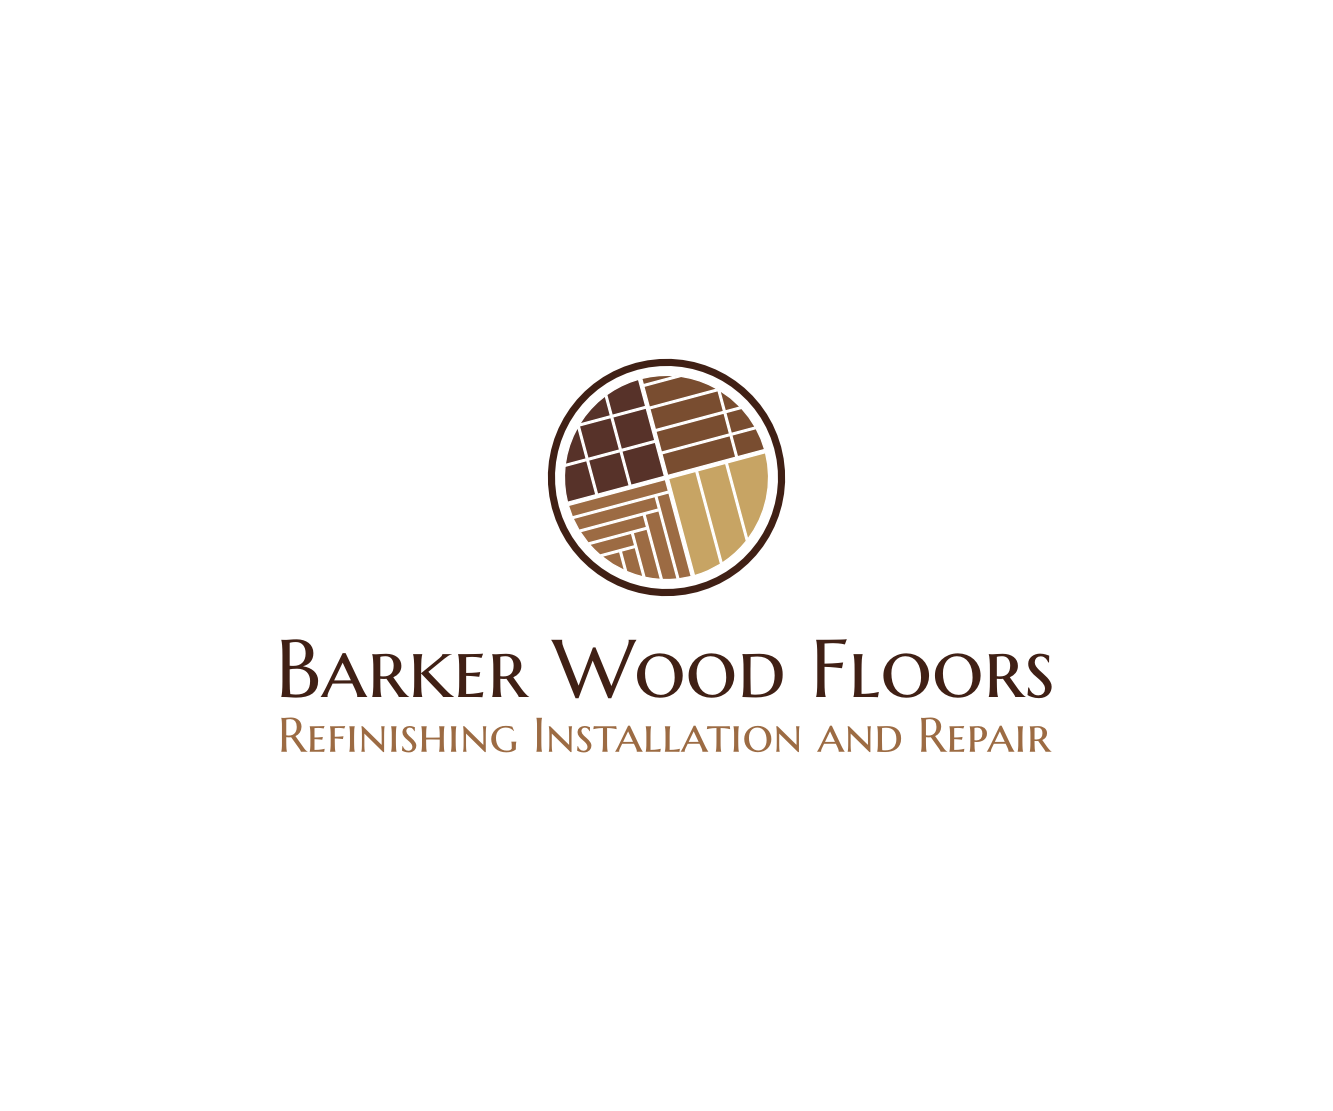 Masculine Bold Woodworking Logo Design For Barker Wood Floors Refinishing Installation And